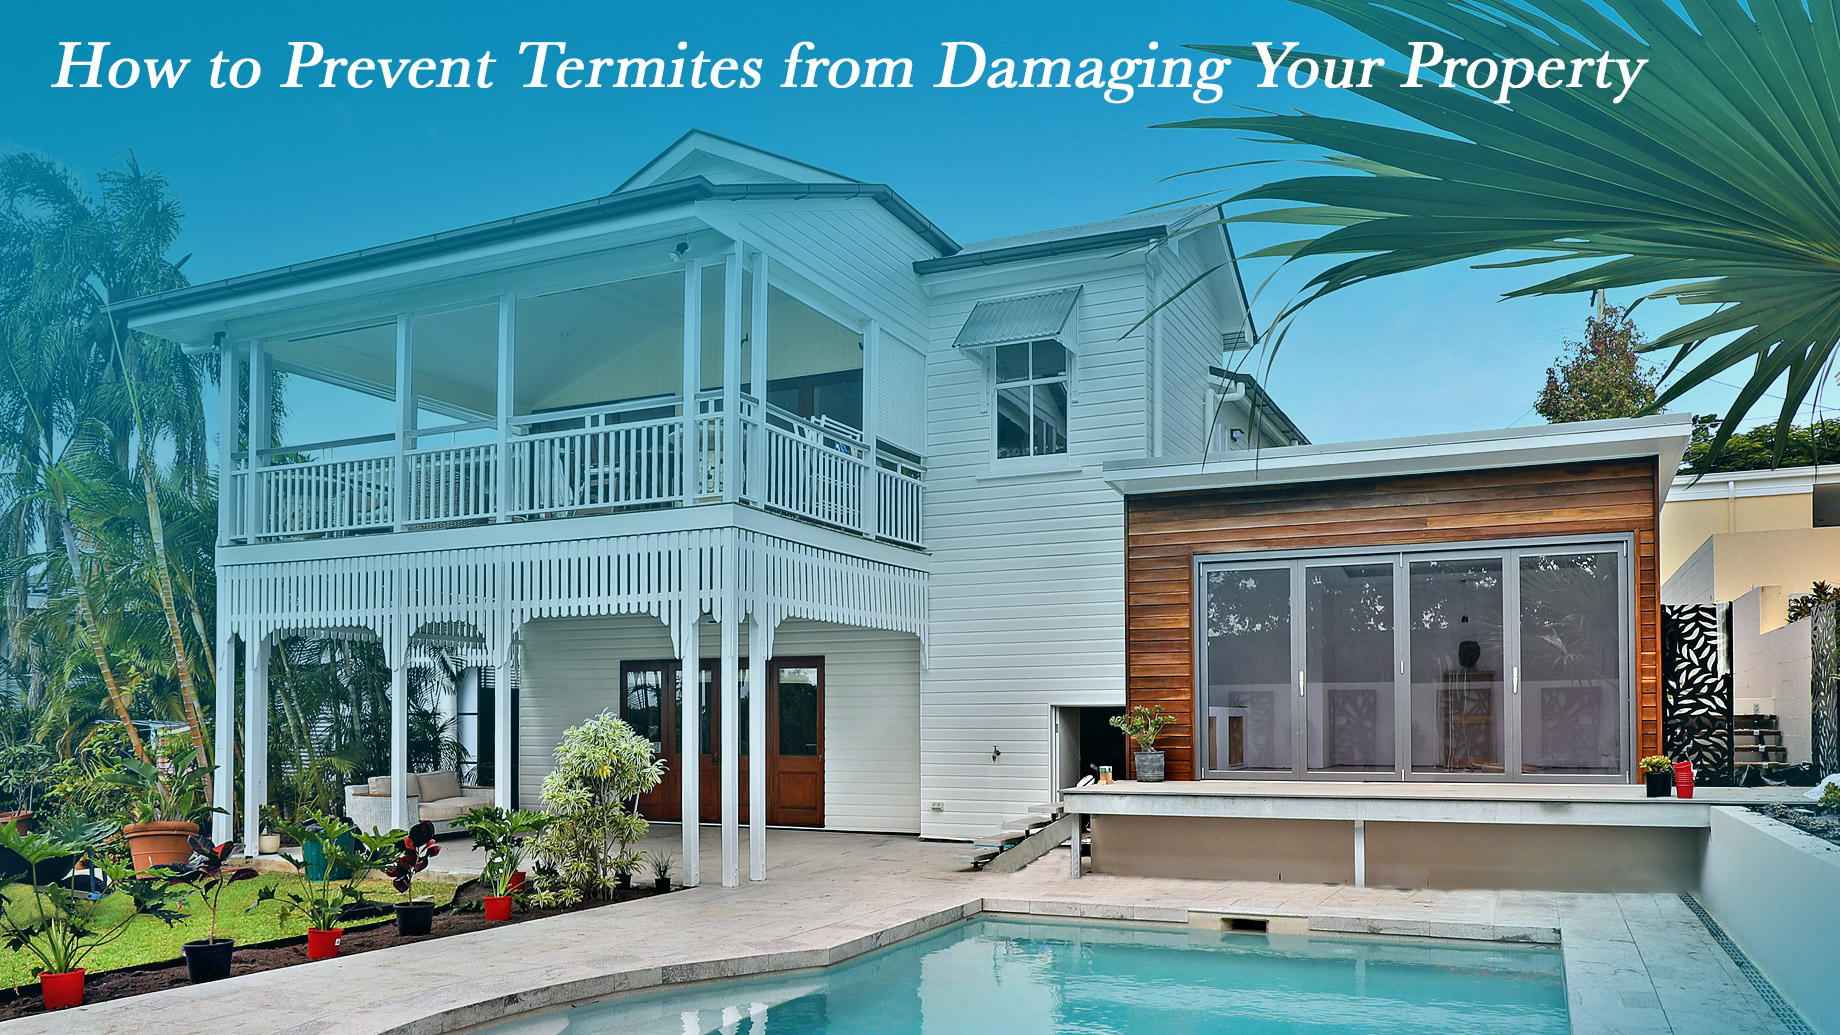 How to Prevent Termites from Damaging Your Property